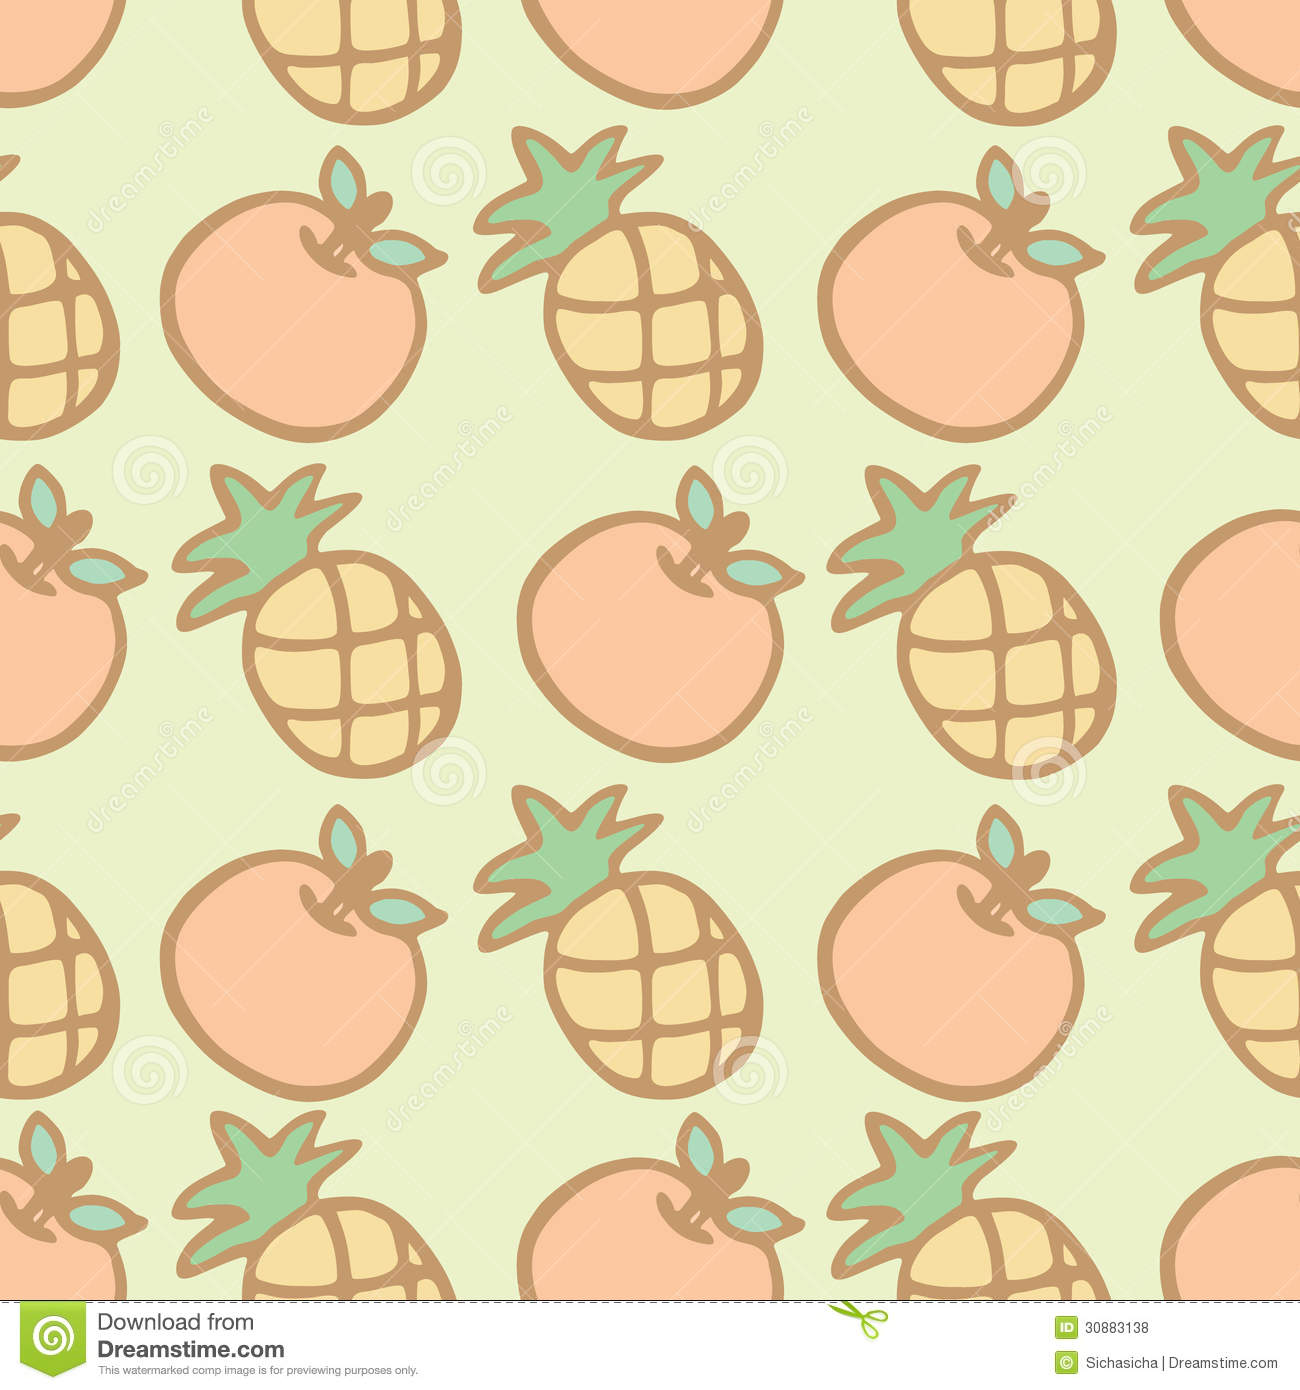 Cool Wallpaper Macbook Pineapple - seamless-pattern-background-cartoon-pineapple-orange-vector-illustration-30883138  Pictures_388216.jpg